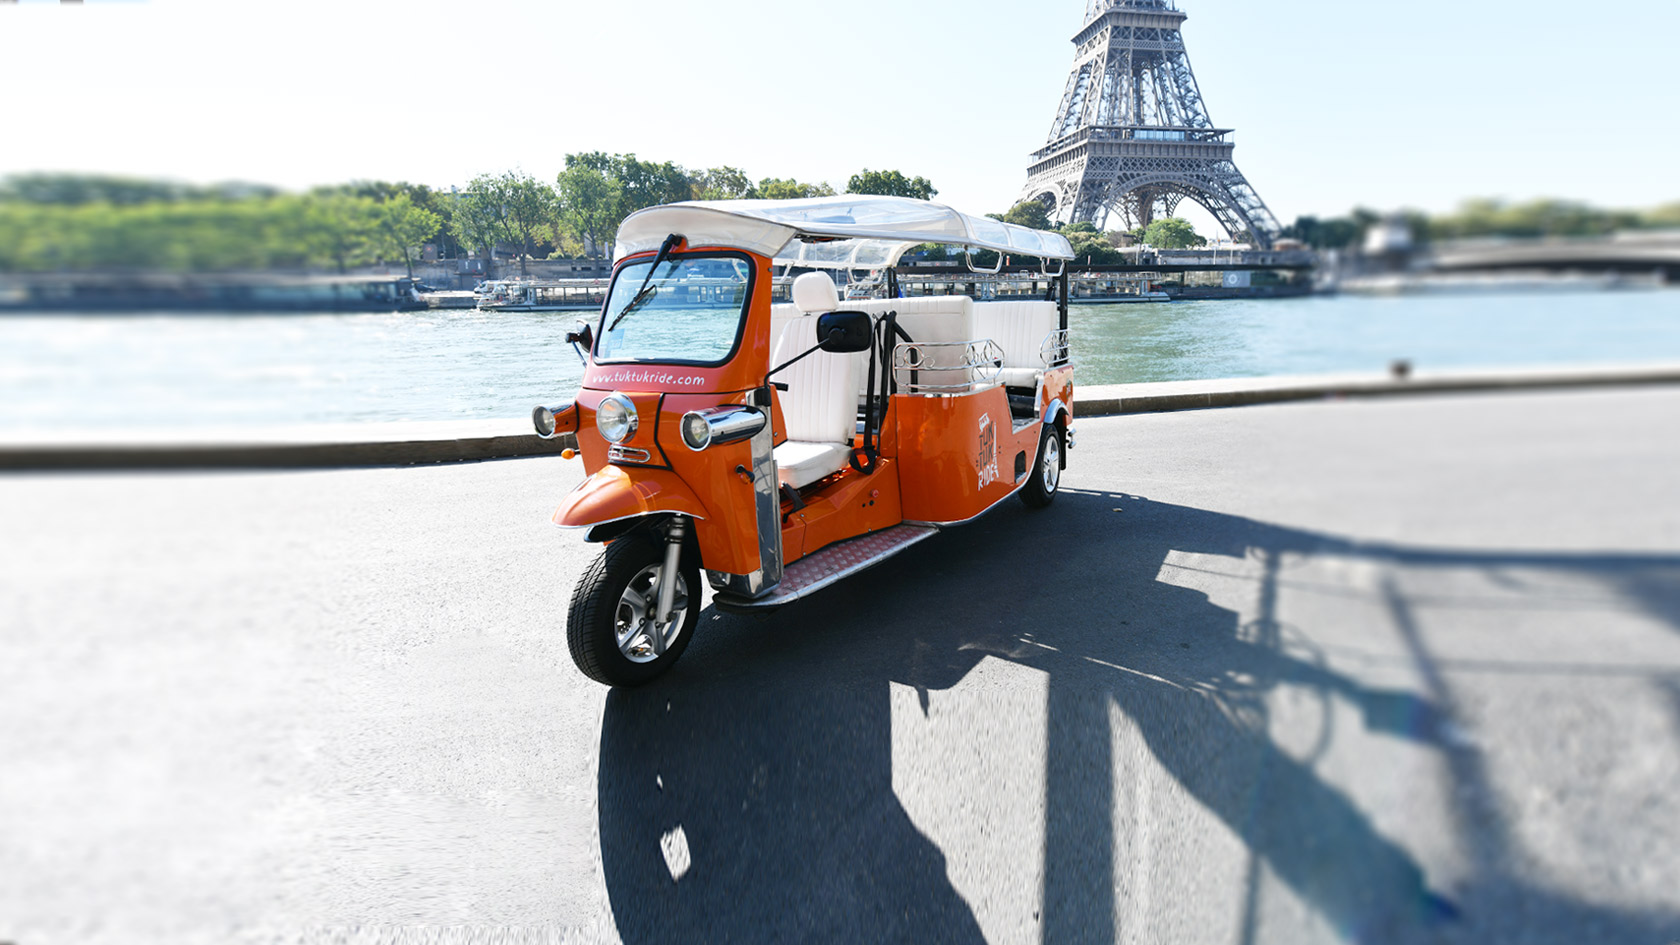 TukTuk paris tour eiffel